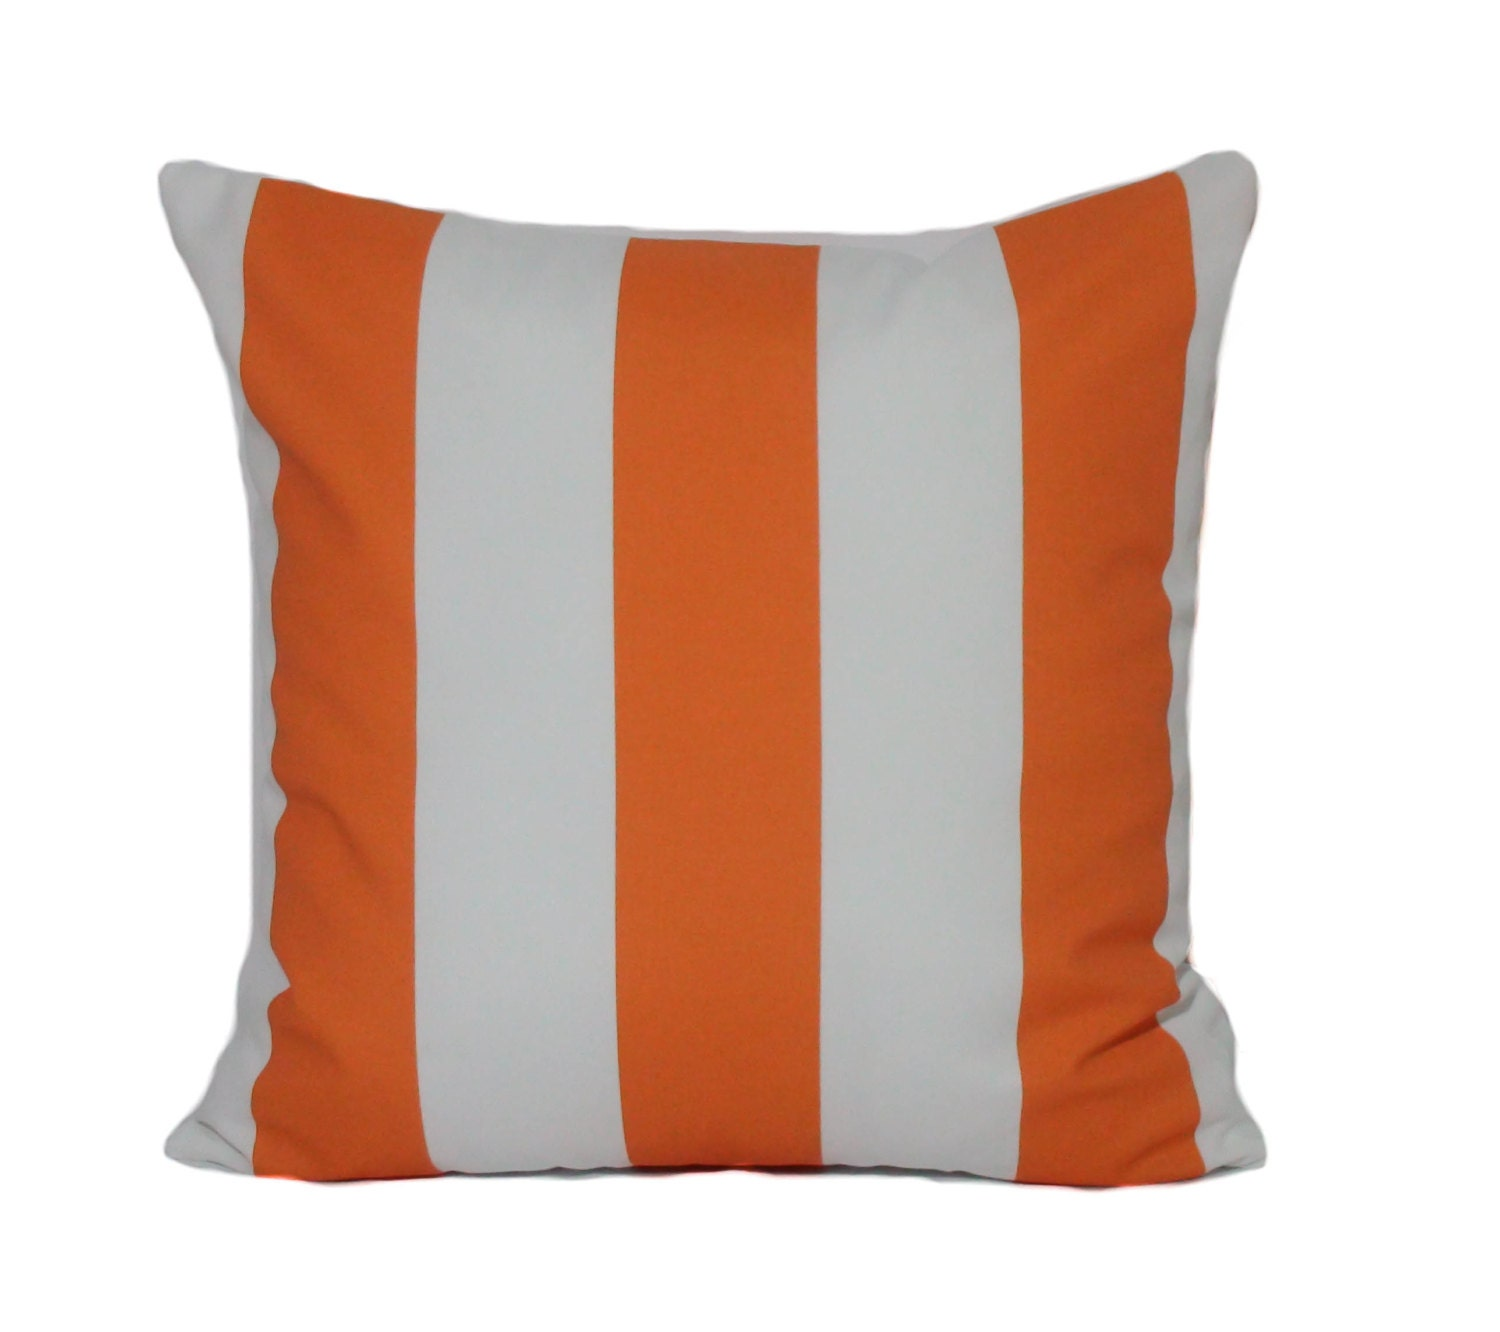 Outdoor pillows 18x18 20x20 22x22 24x24 Halloween pillow